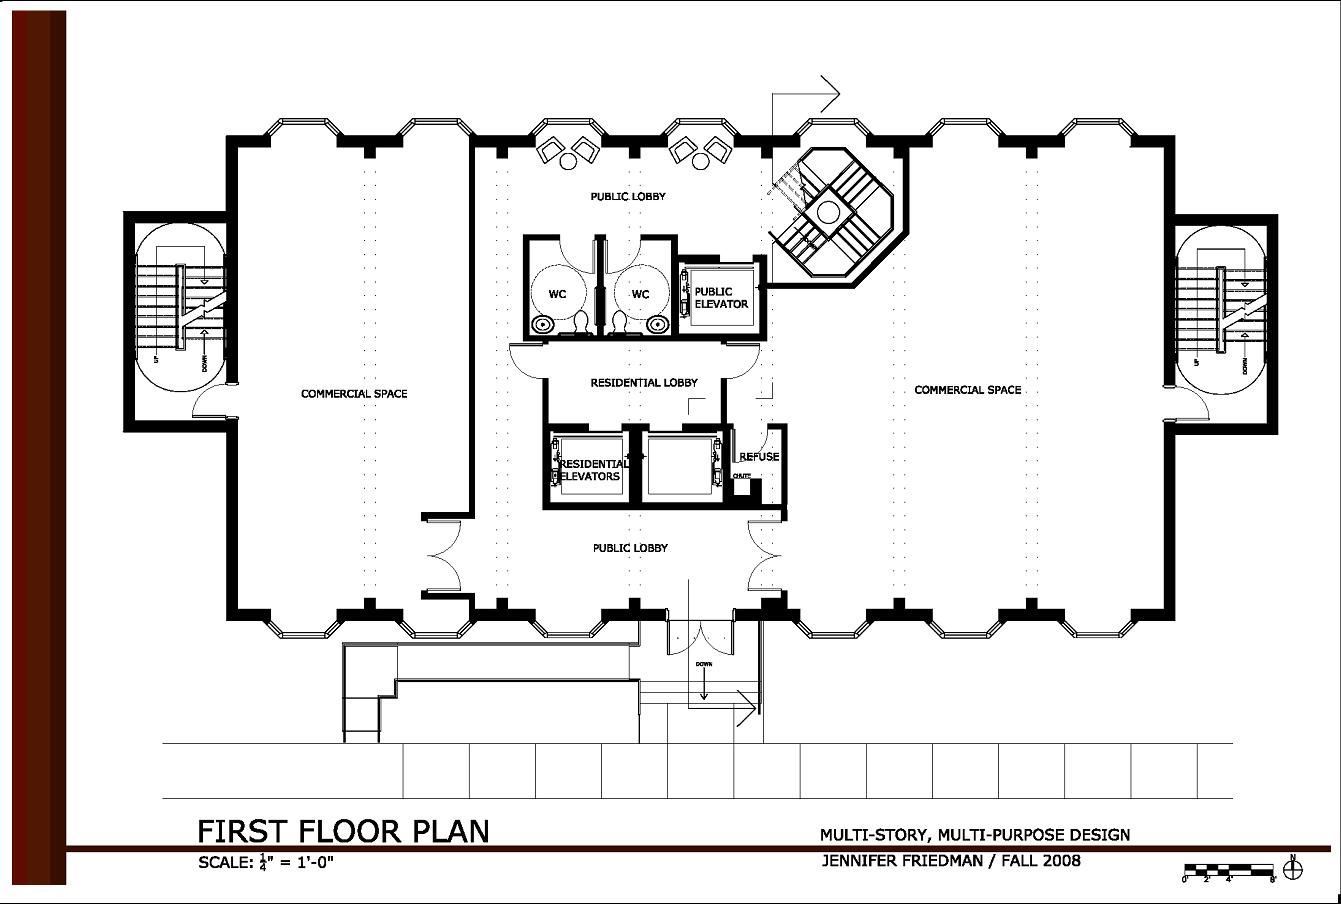 17 Genius Two Story Office Building Plans House Plans